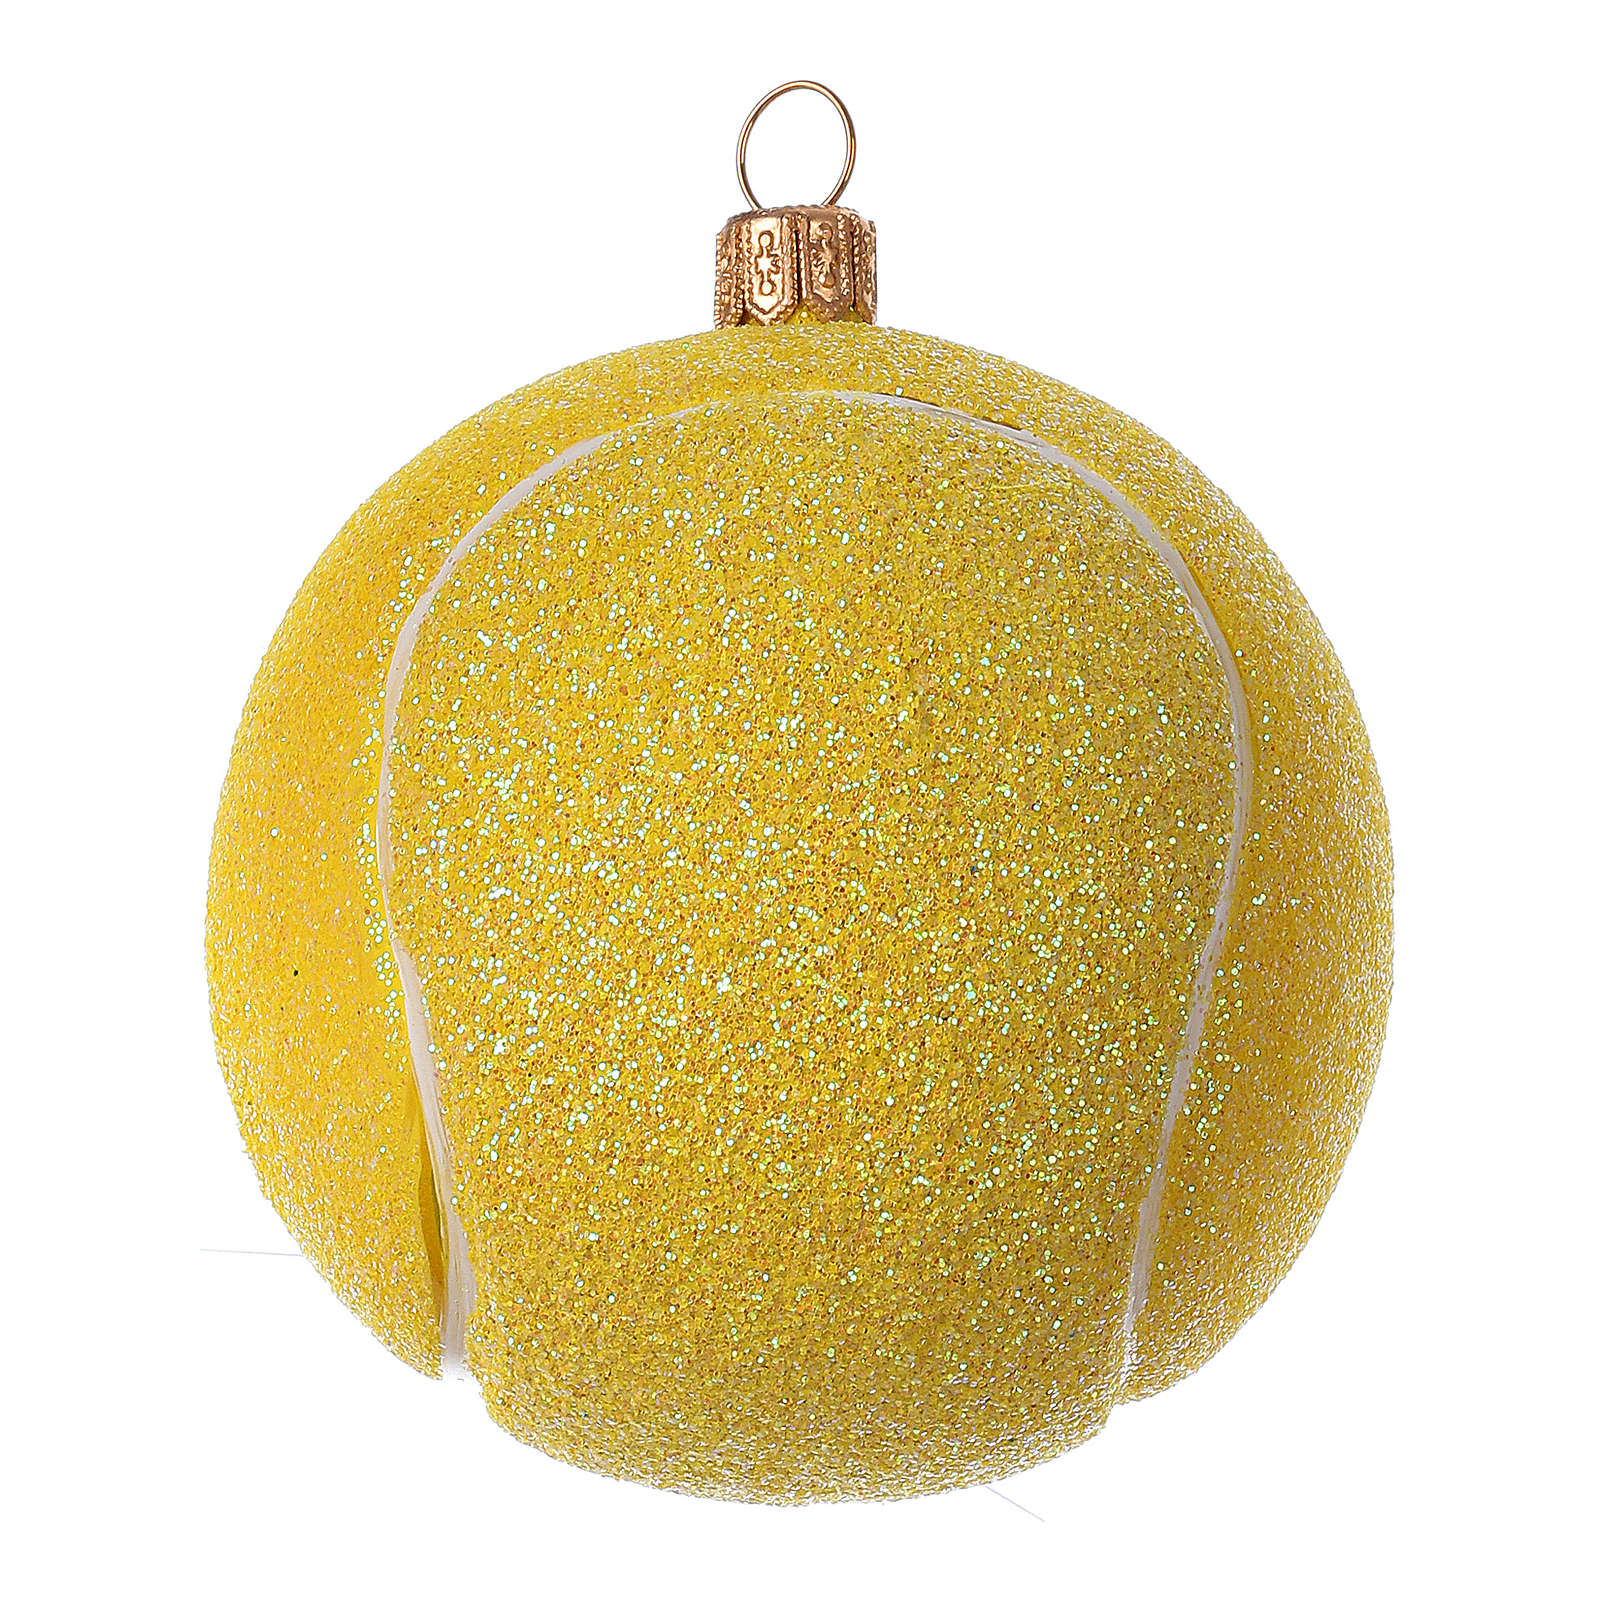 Tennis ball, blown glass Christmas ornament 4